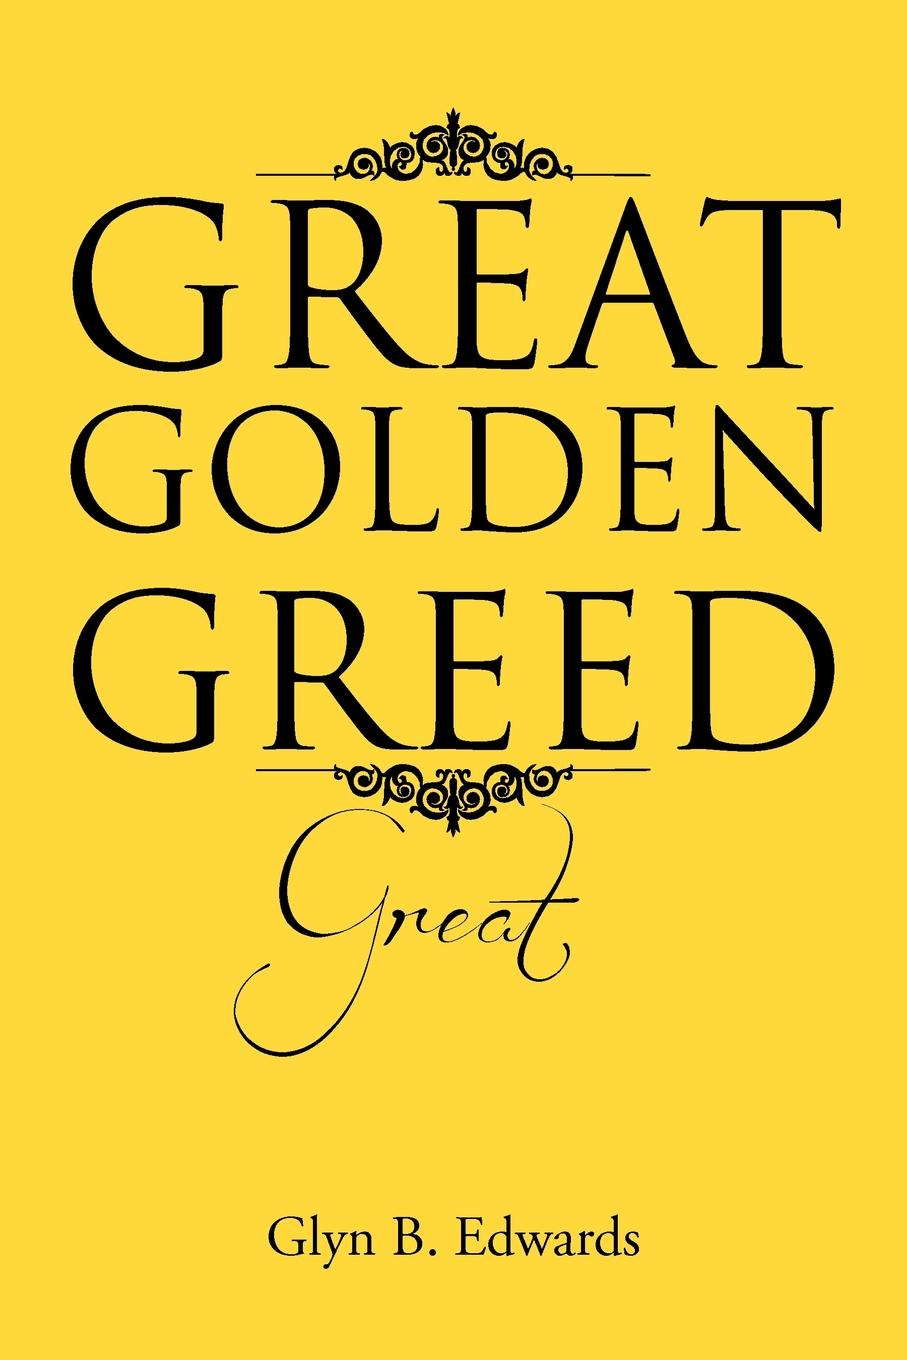 Glyn B. Edwards Great Golden Greed.